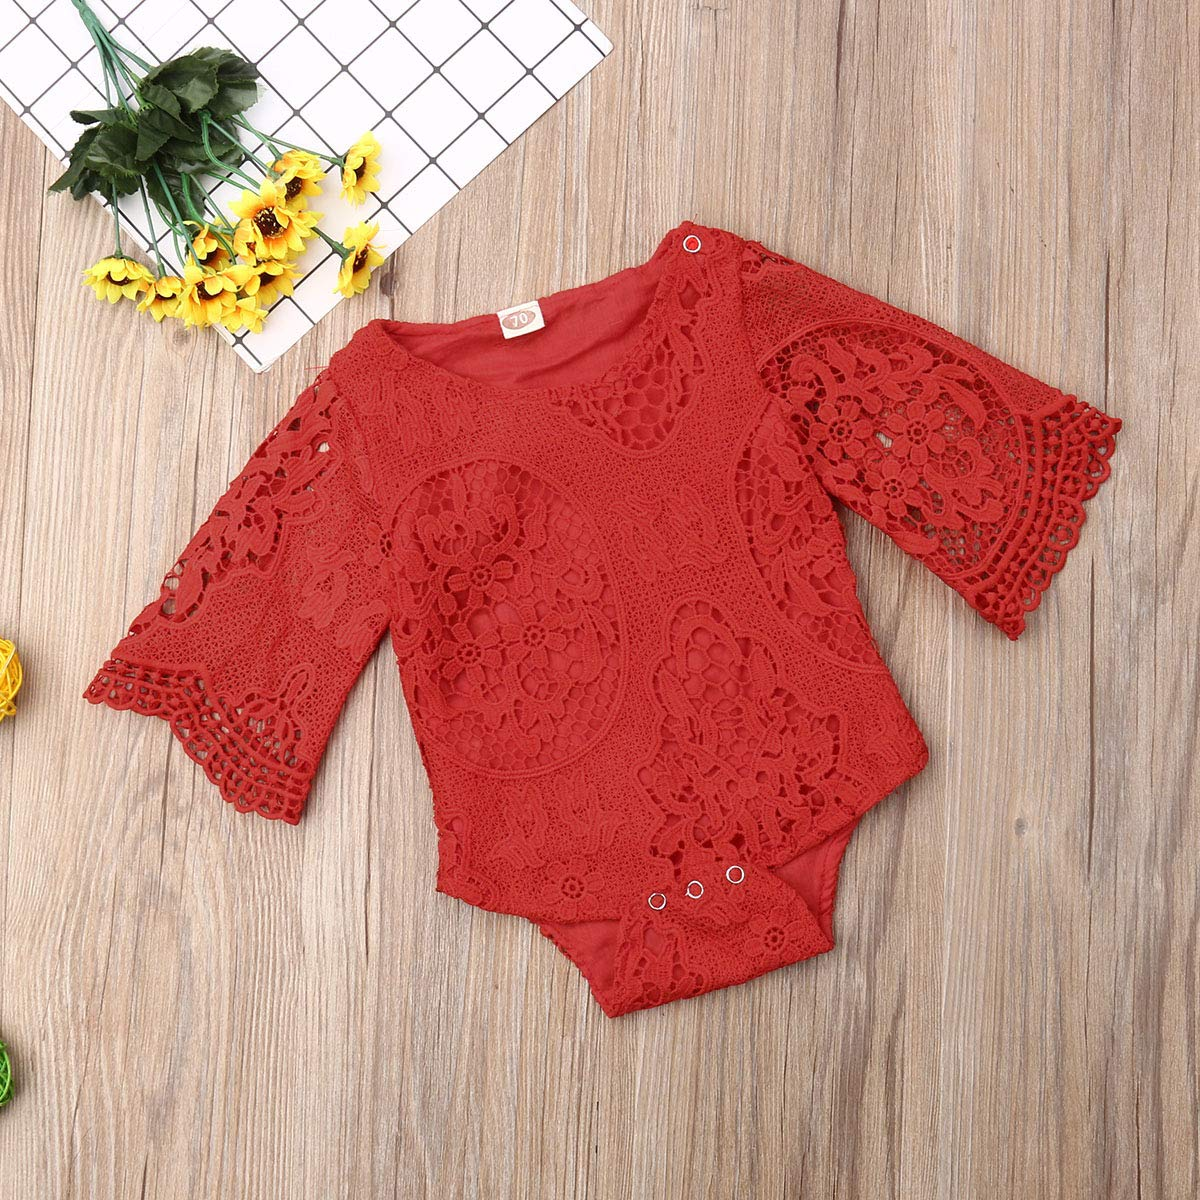 Baby Girl Clothes White Lace Romper Bodysuit Jumpsuit Sunsuit Newborn Clothing Outfits Baby Birthday Shower Gift